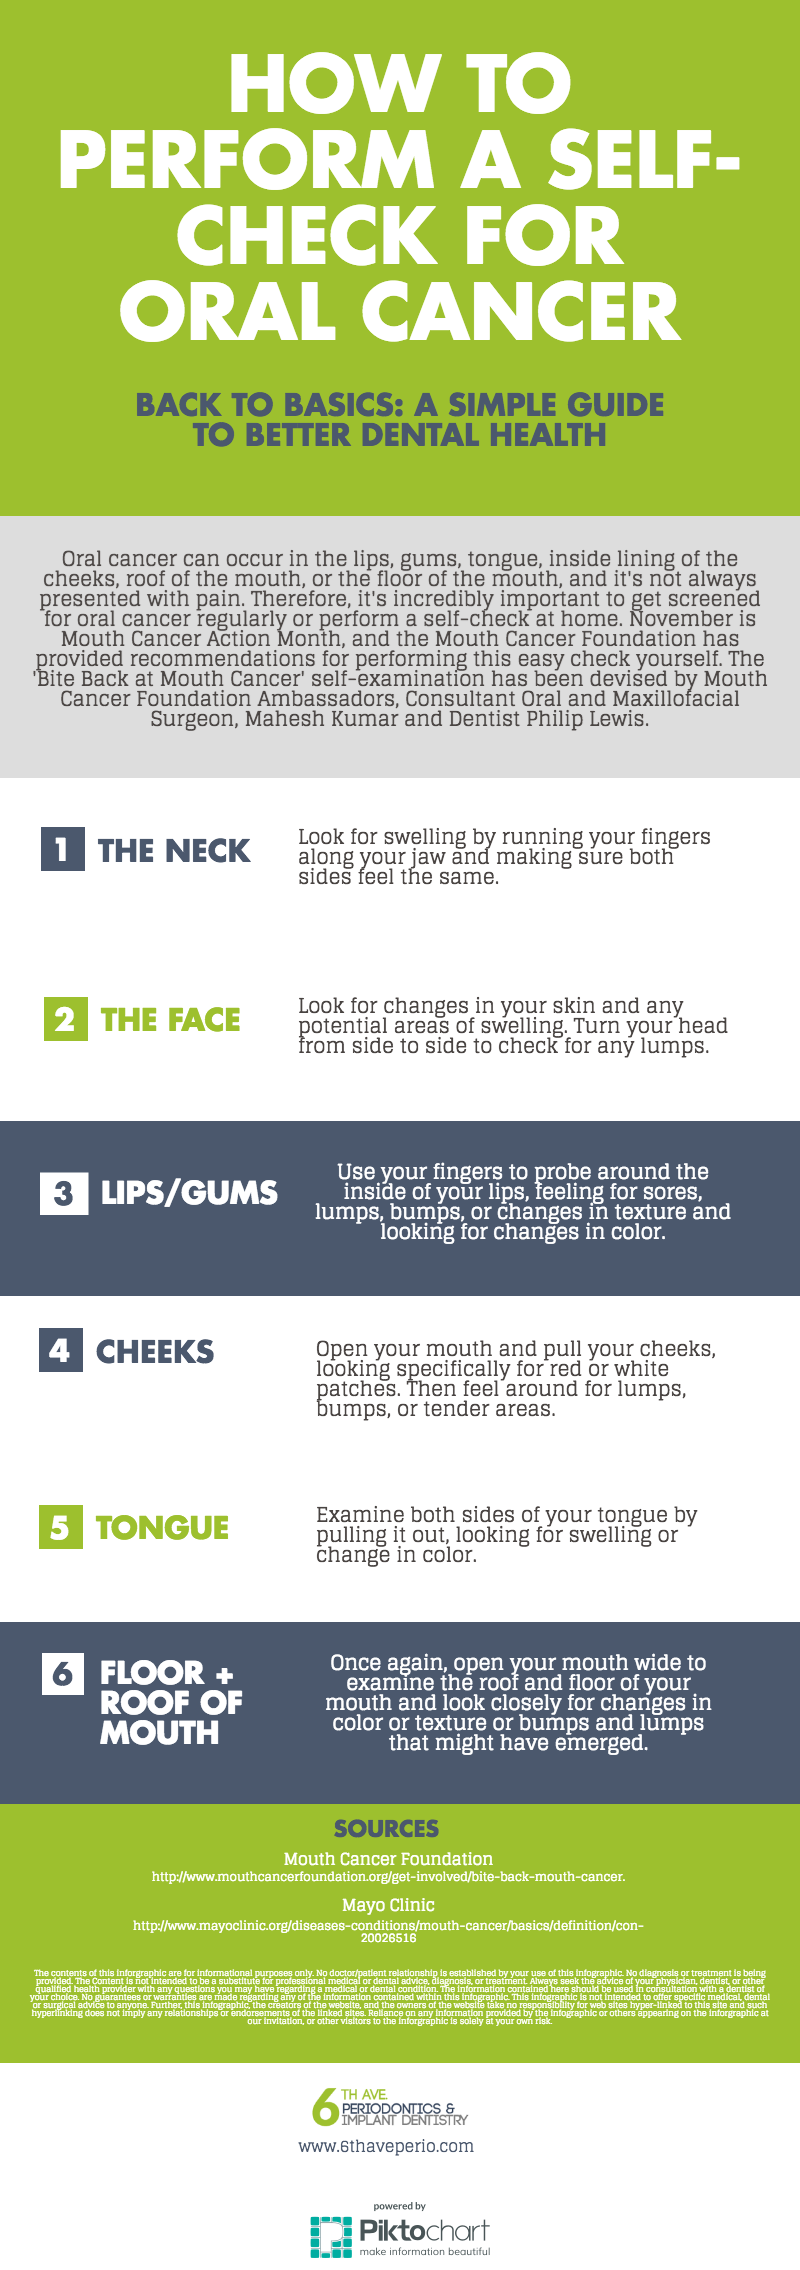 oralcancerselfcheckinfographic